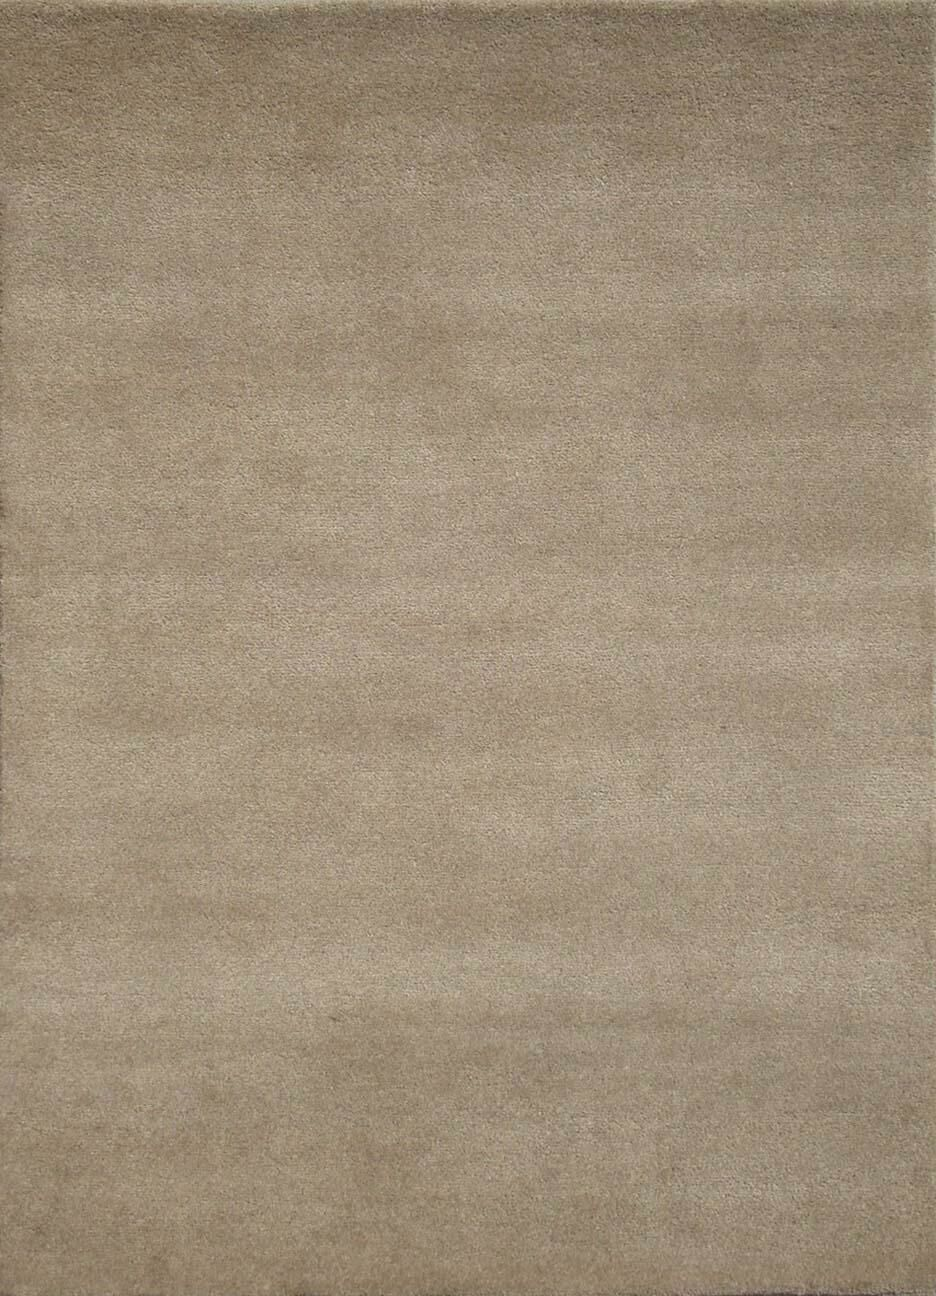 Henley Hand-Tufted Bisque Area Rug Rug Size: 5' x 8'